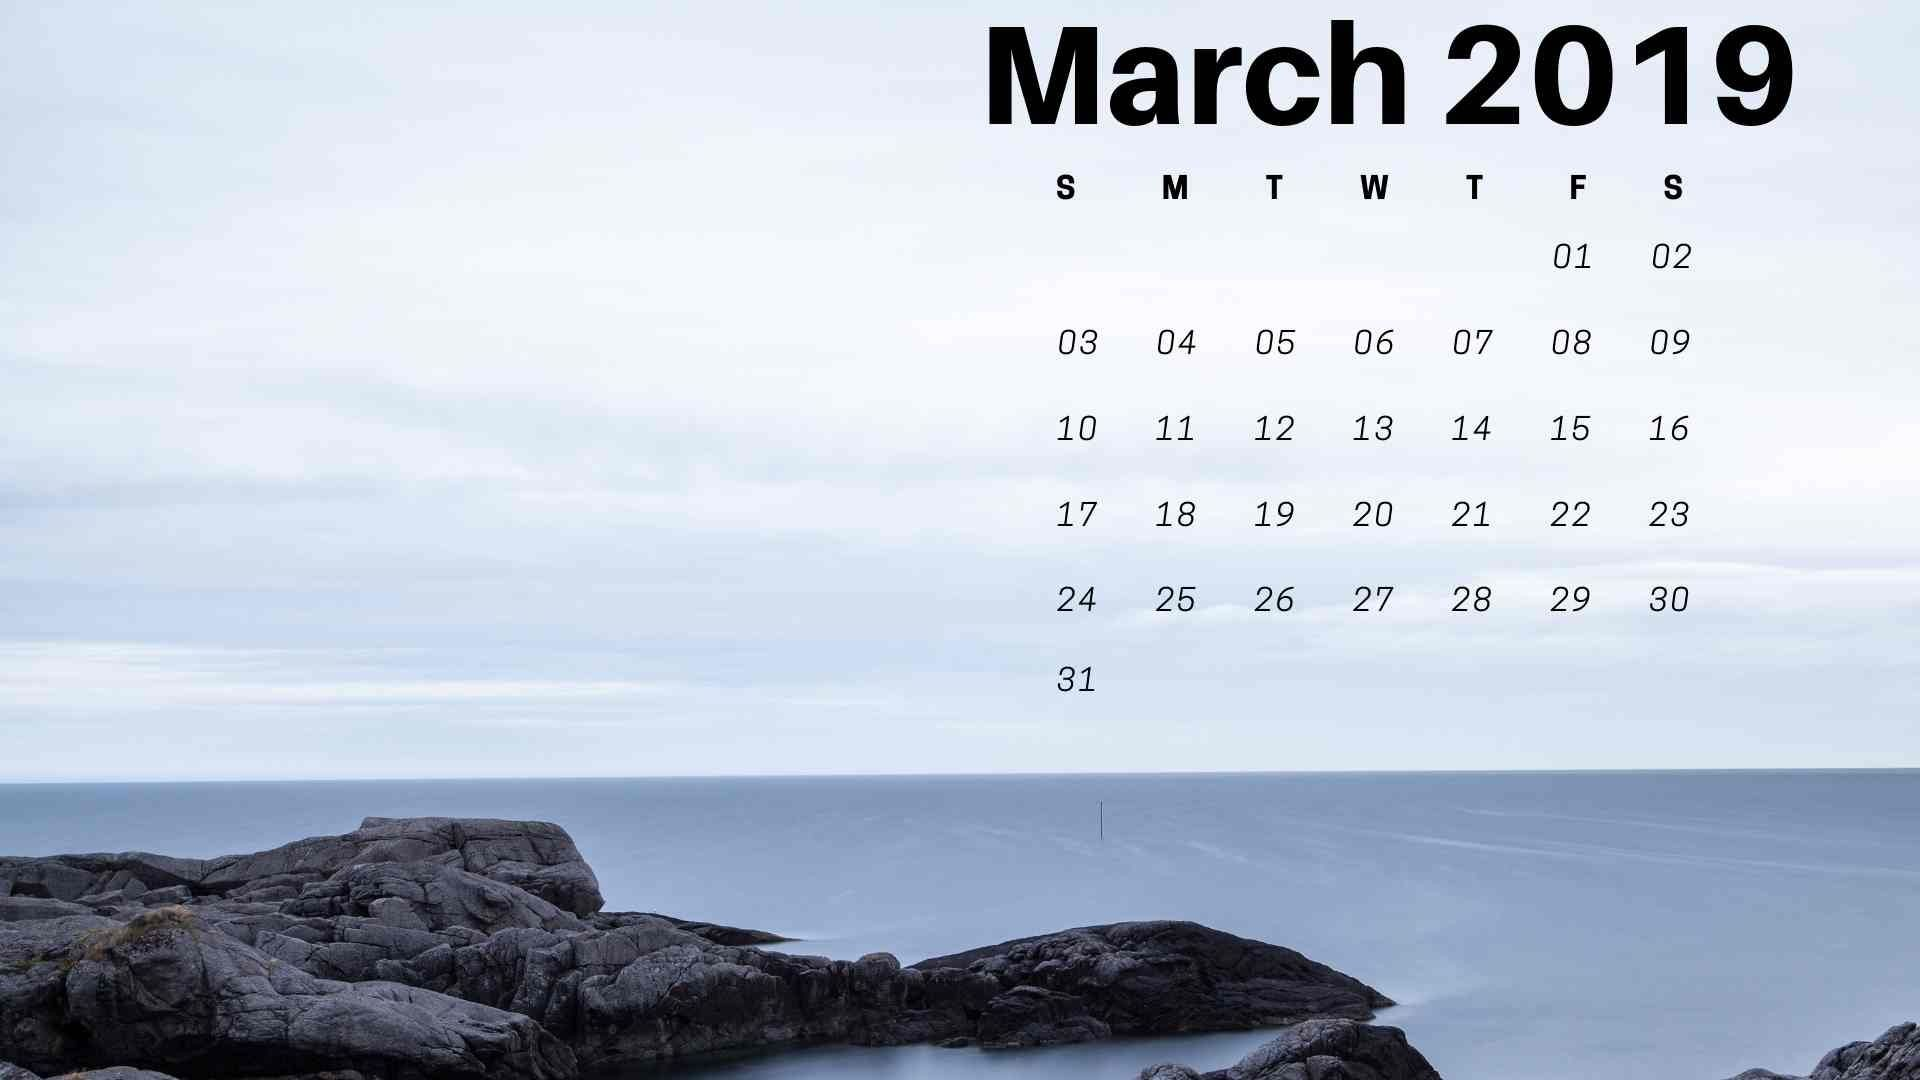 March 2019 Calendar Landscape Más Actual March 2019 Calendar Wallpaper Desktop March Calendar Calenda2019 Of March 2019 Calendar Landscape Más Recientes 2010 Calendar